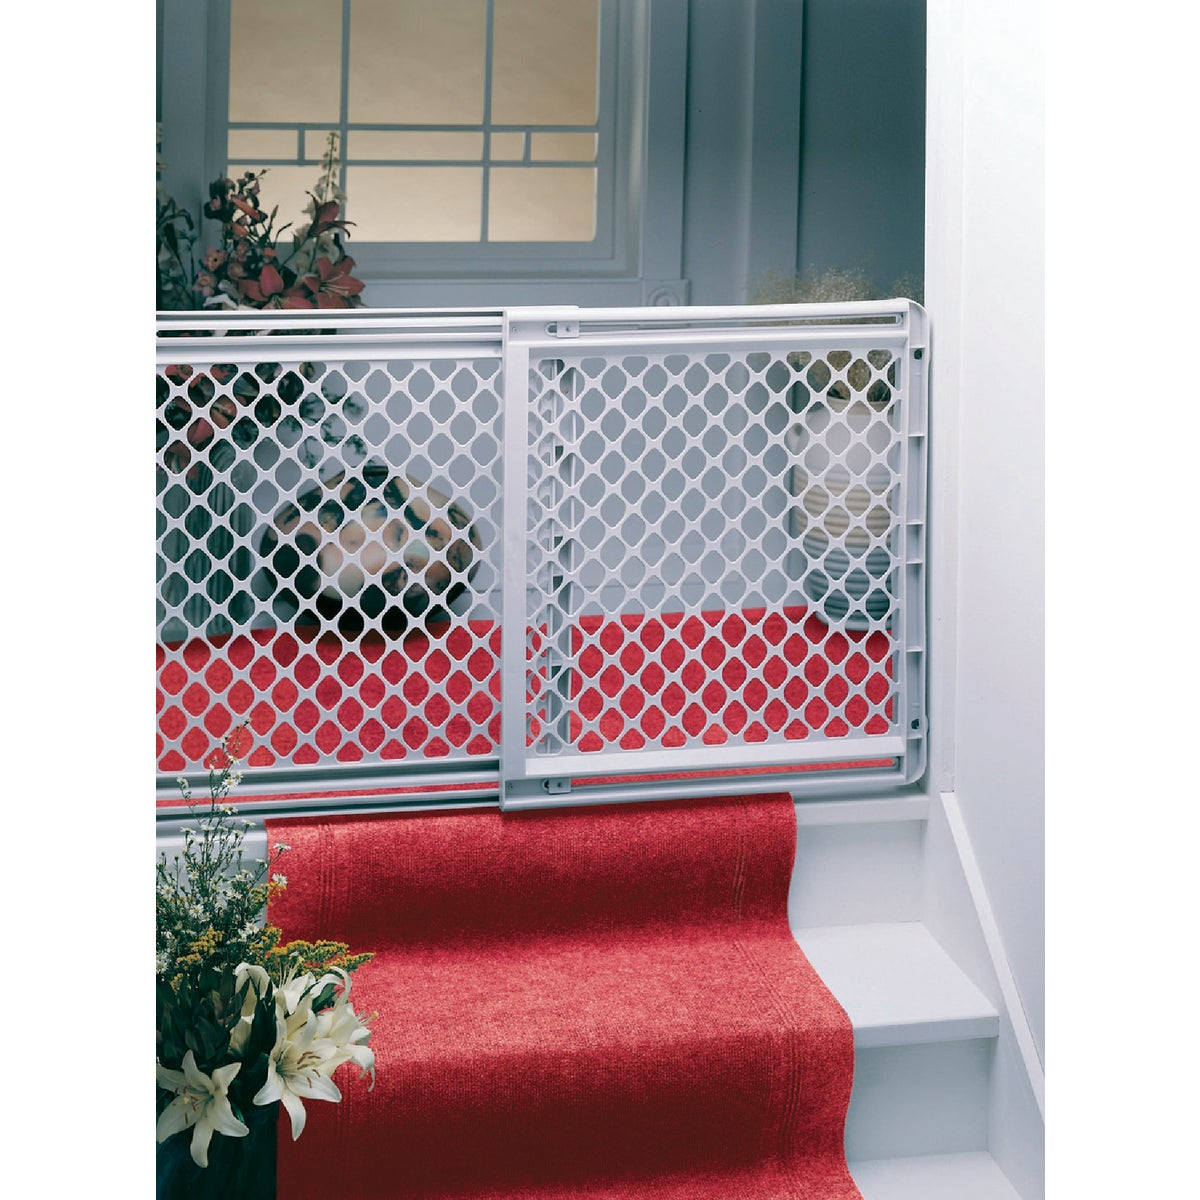 26-41 STAIRWAY GATE - 8670 by North State Ind